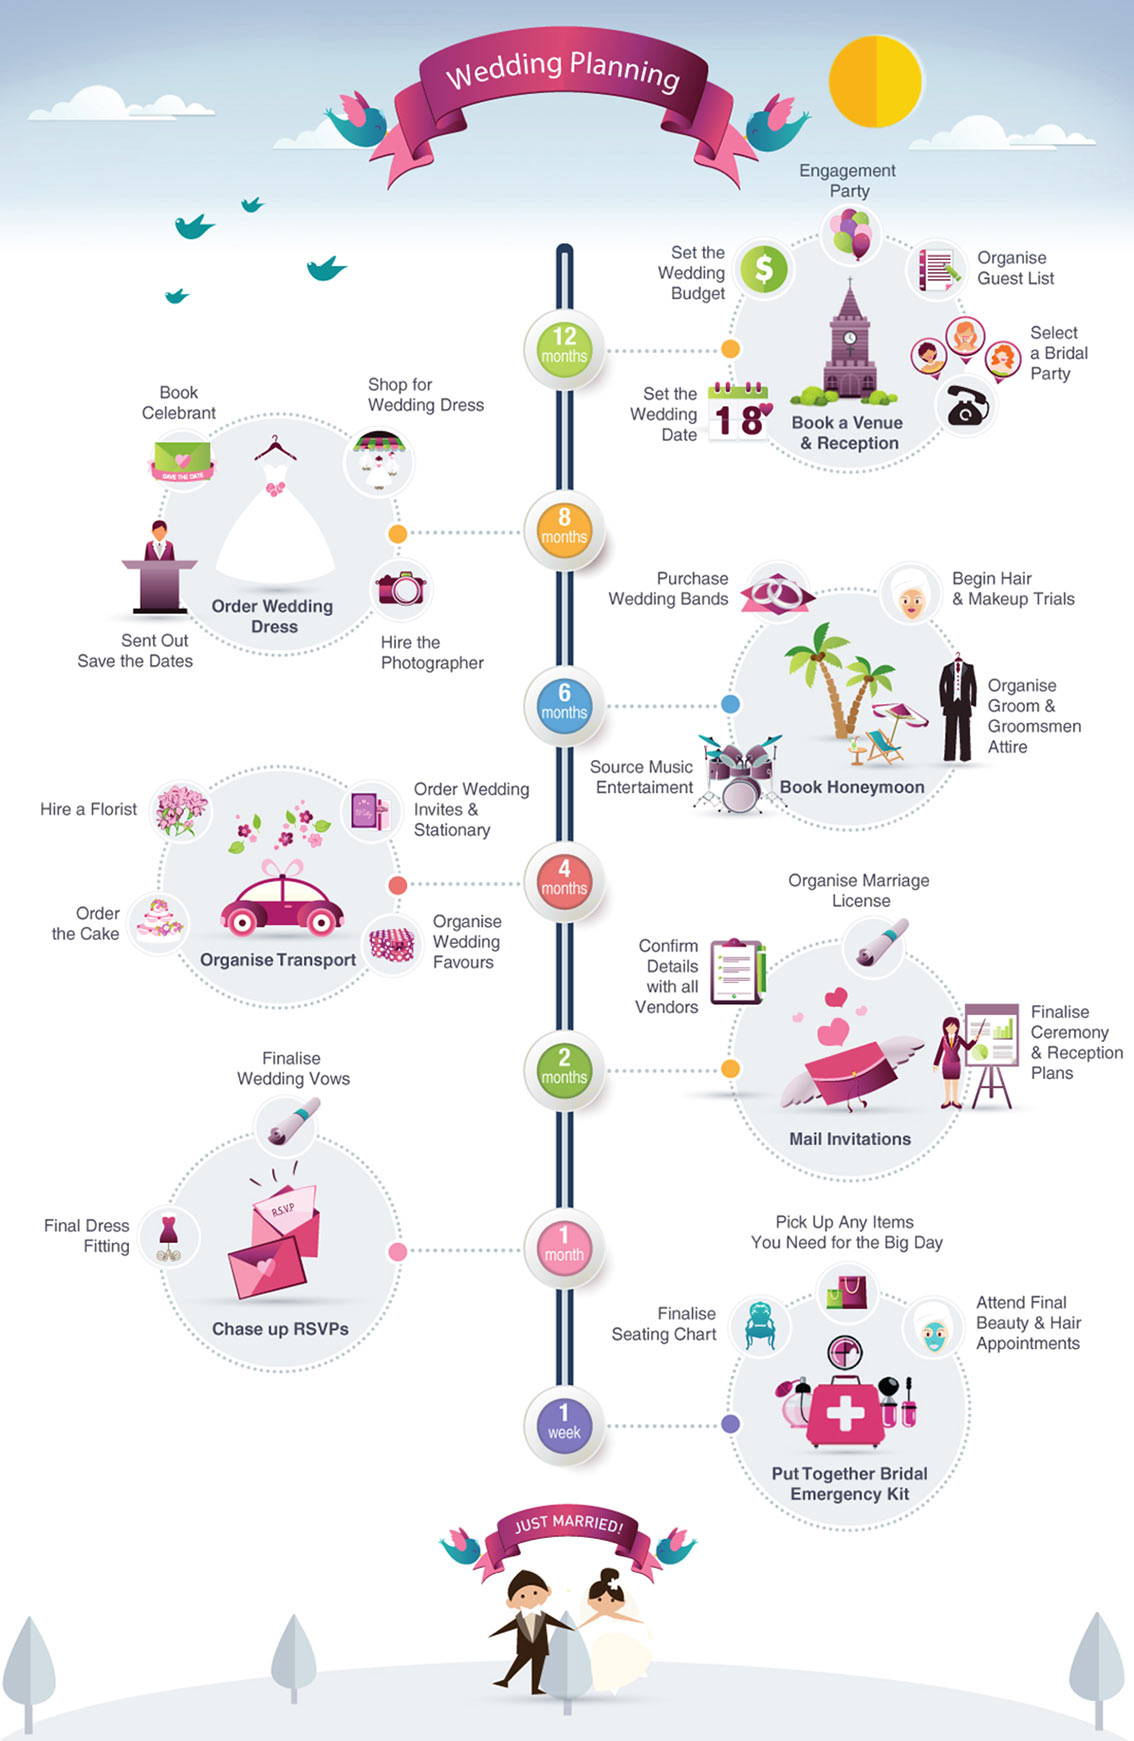 Pre-Wedding Events Timeline Infographic